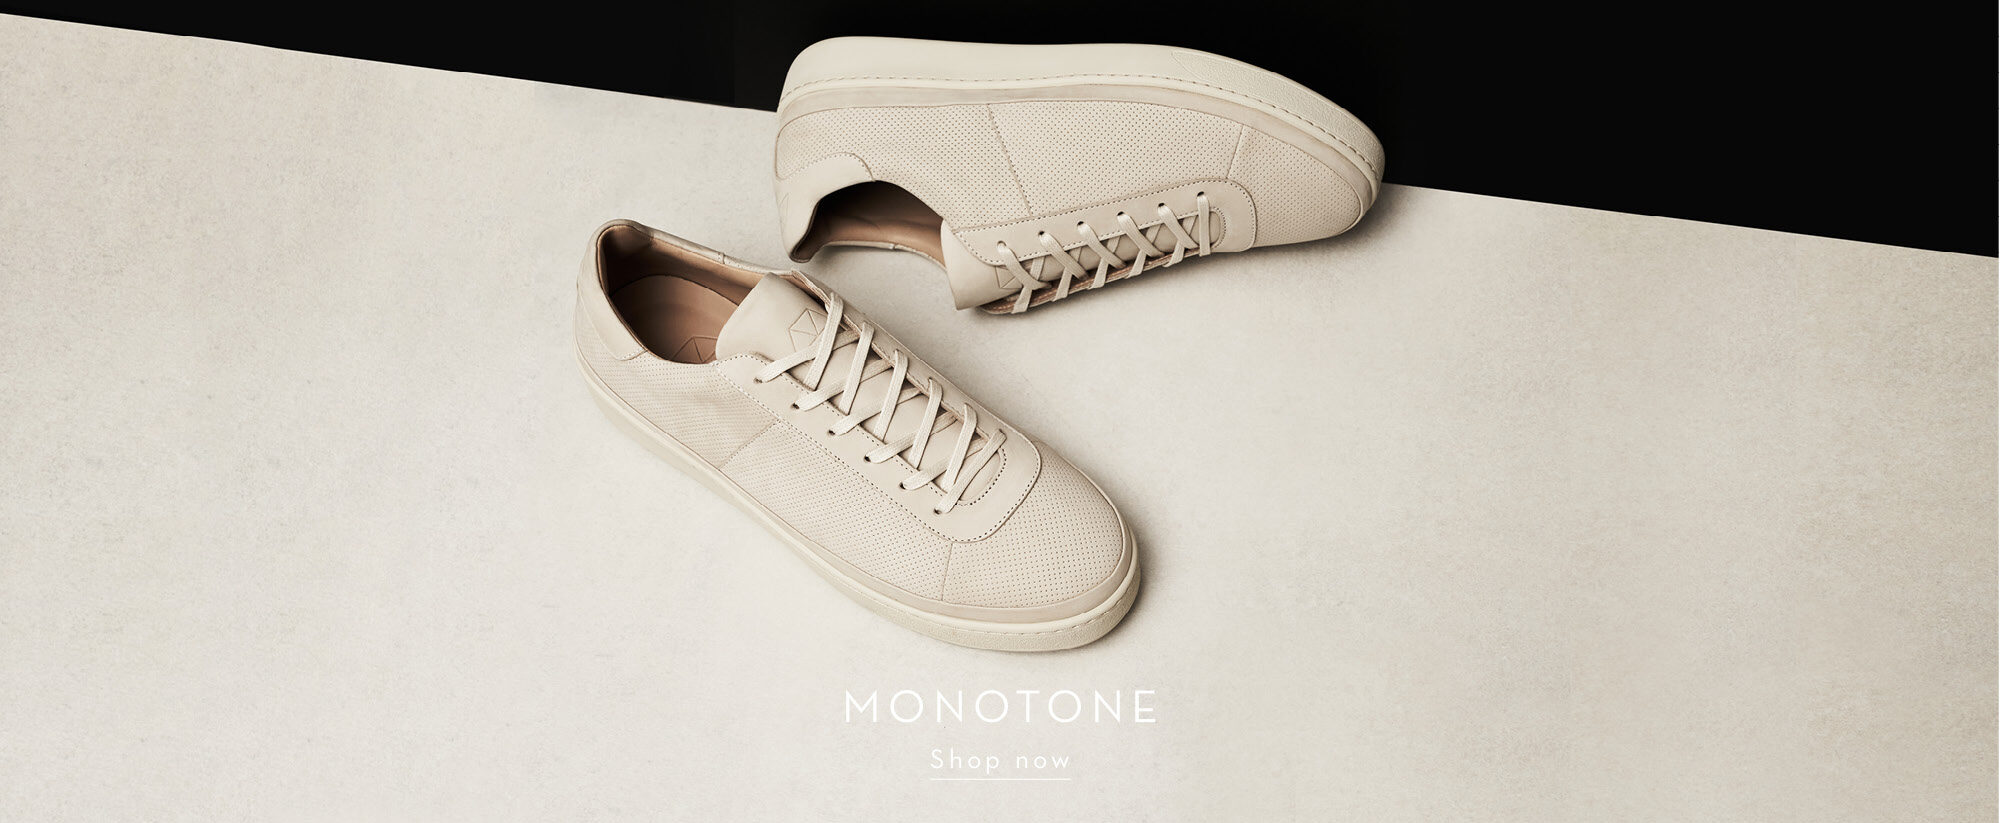 Monotone Mens Shoes - Off-white Perforated Mens Sneakers